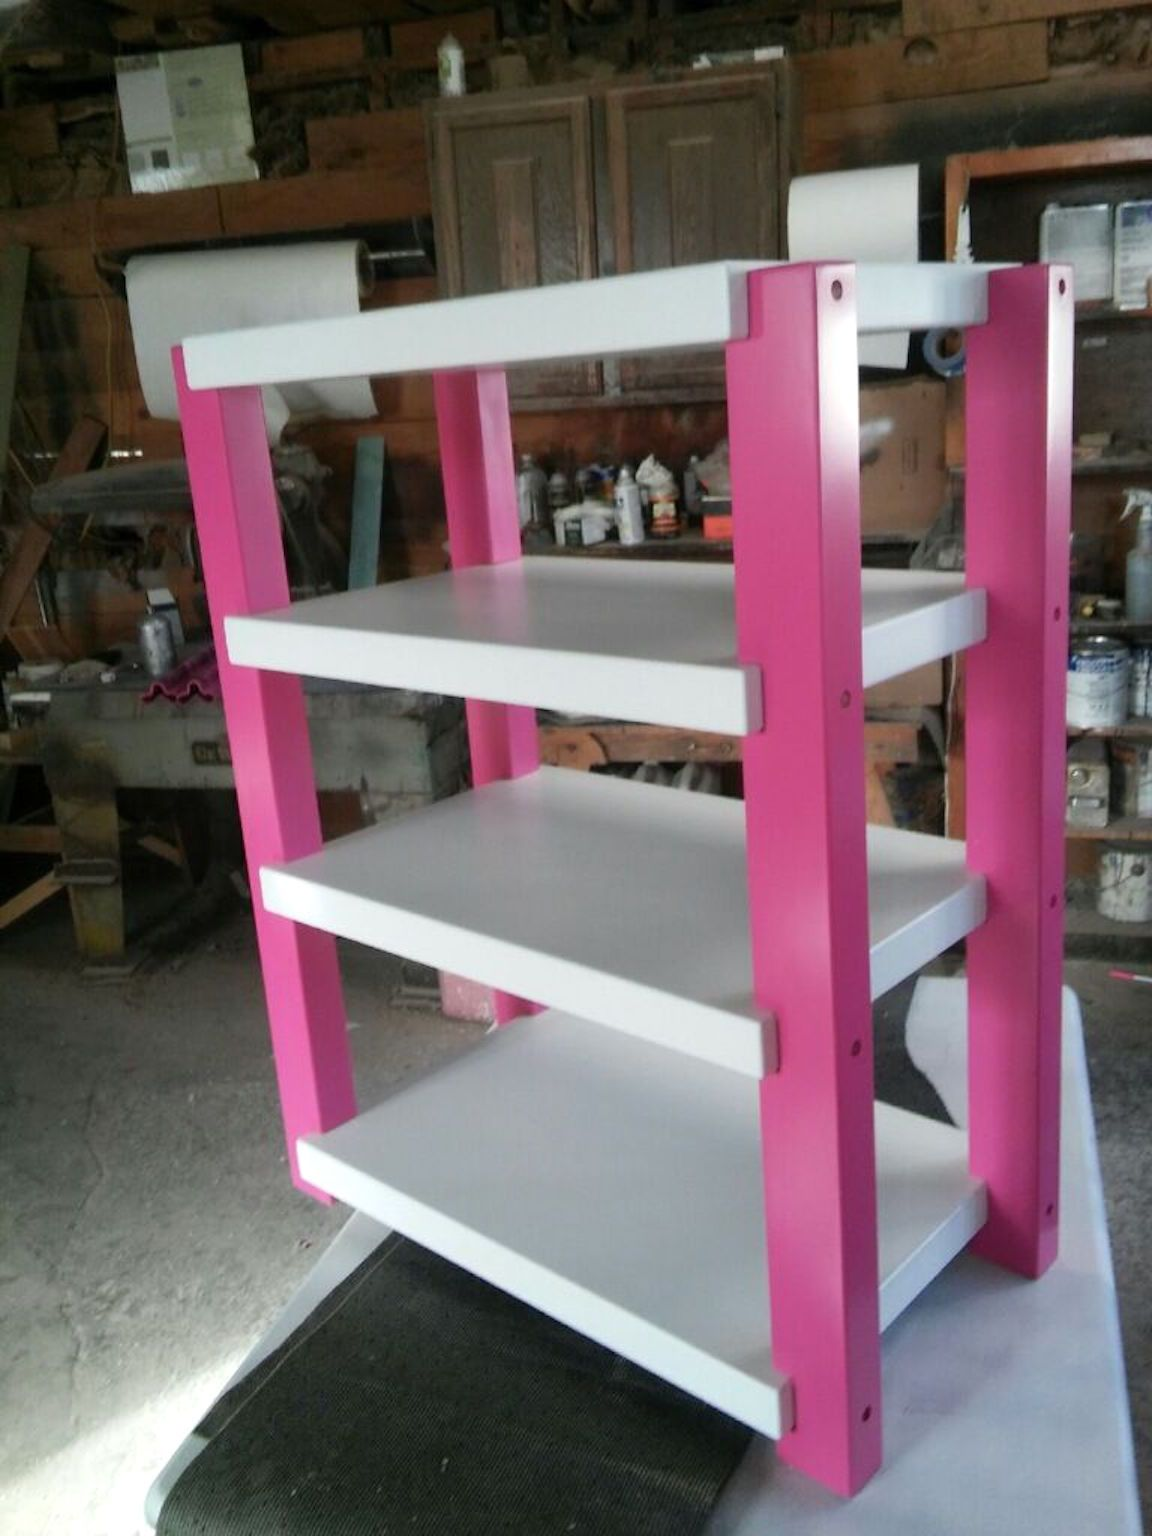 White Shelves with Pink Posts